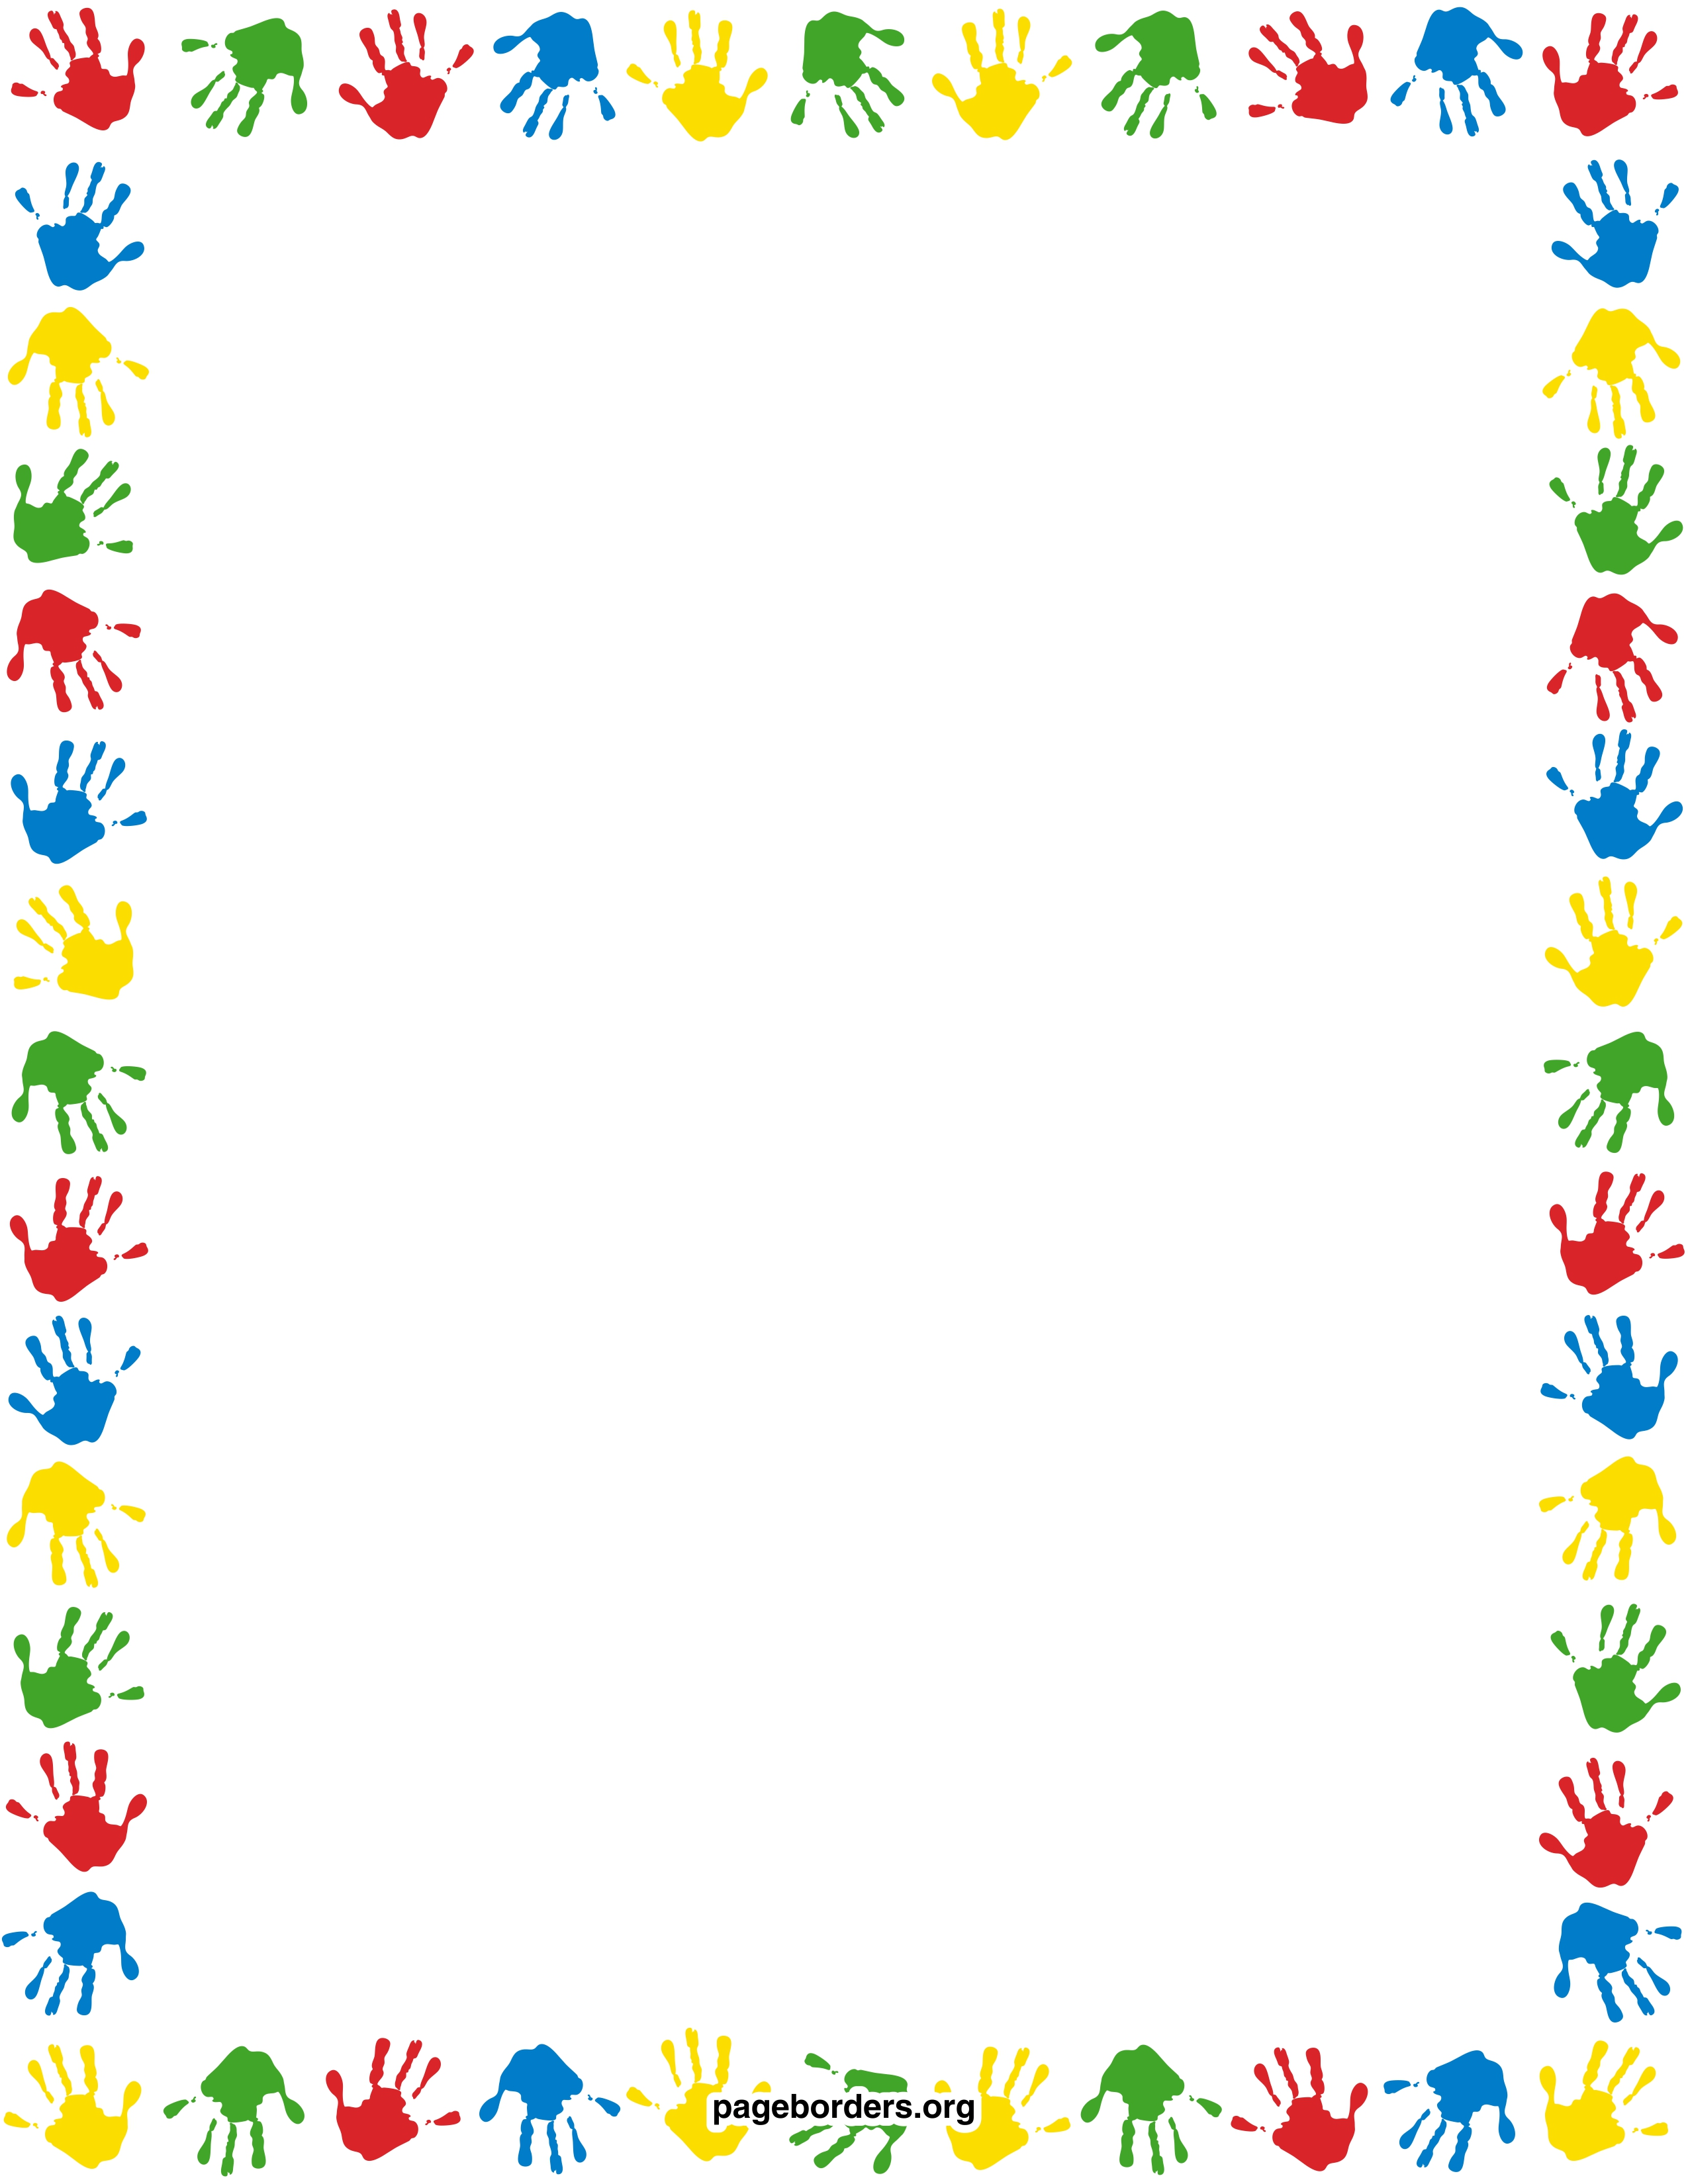 Printable children border. Free GIF, JPG, PDF, and PNG downloads.